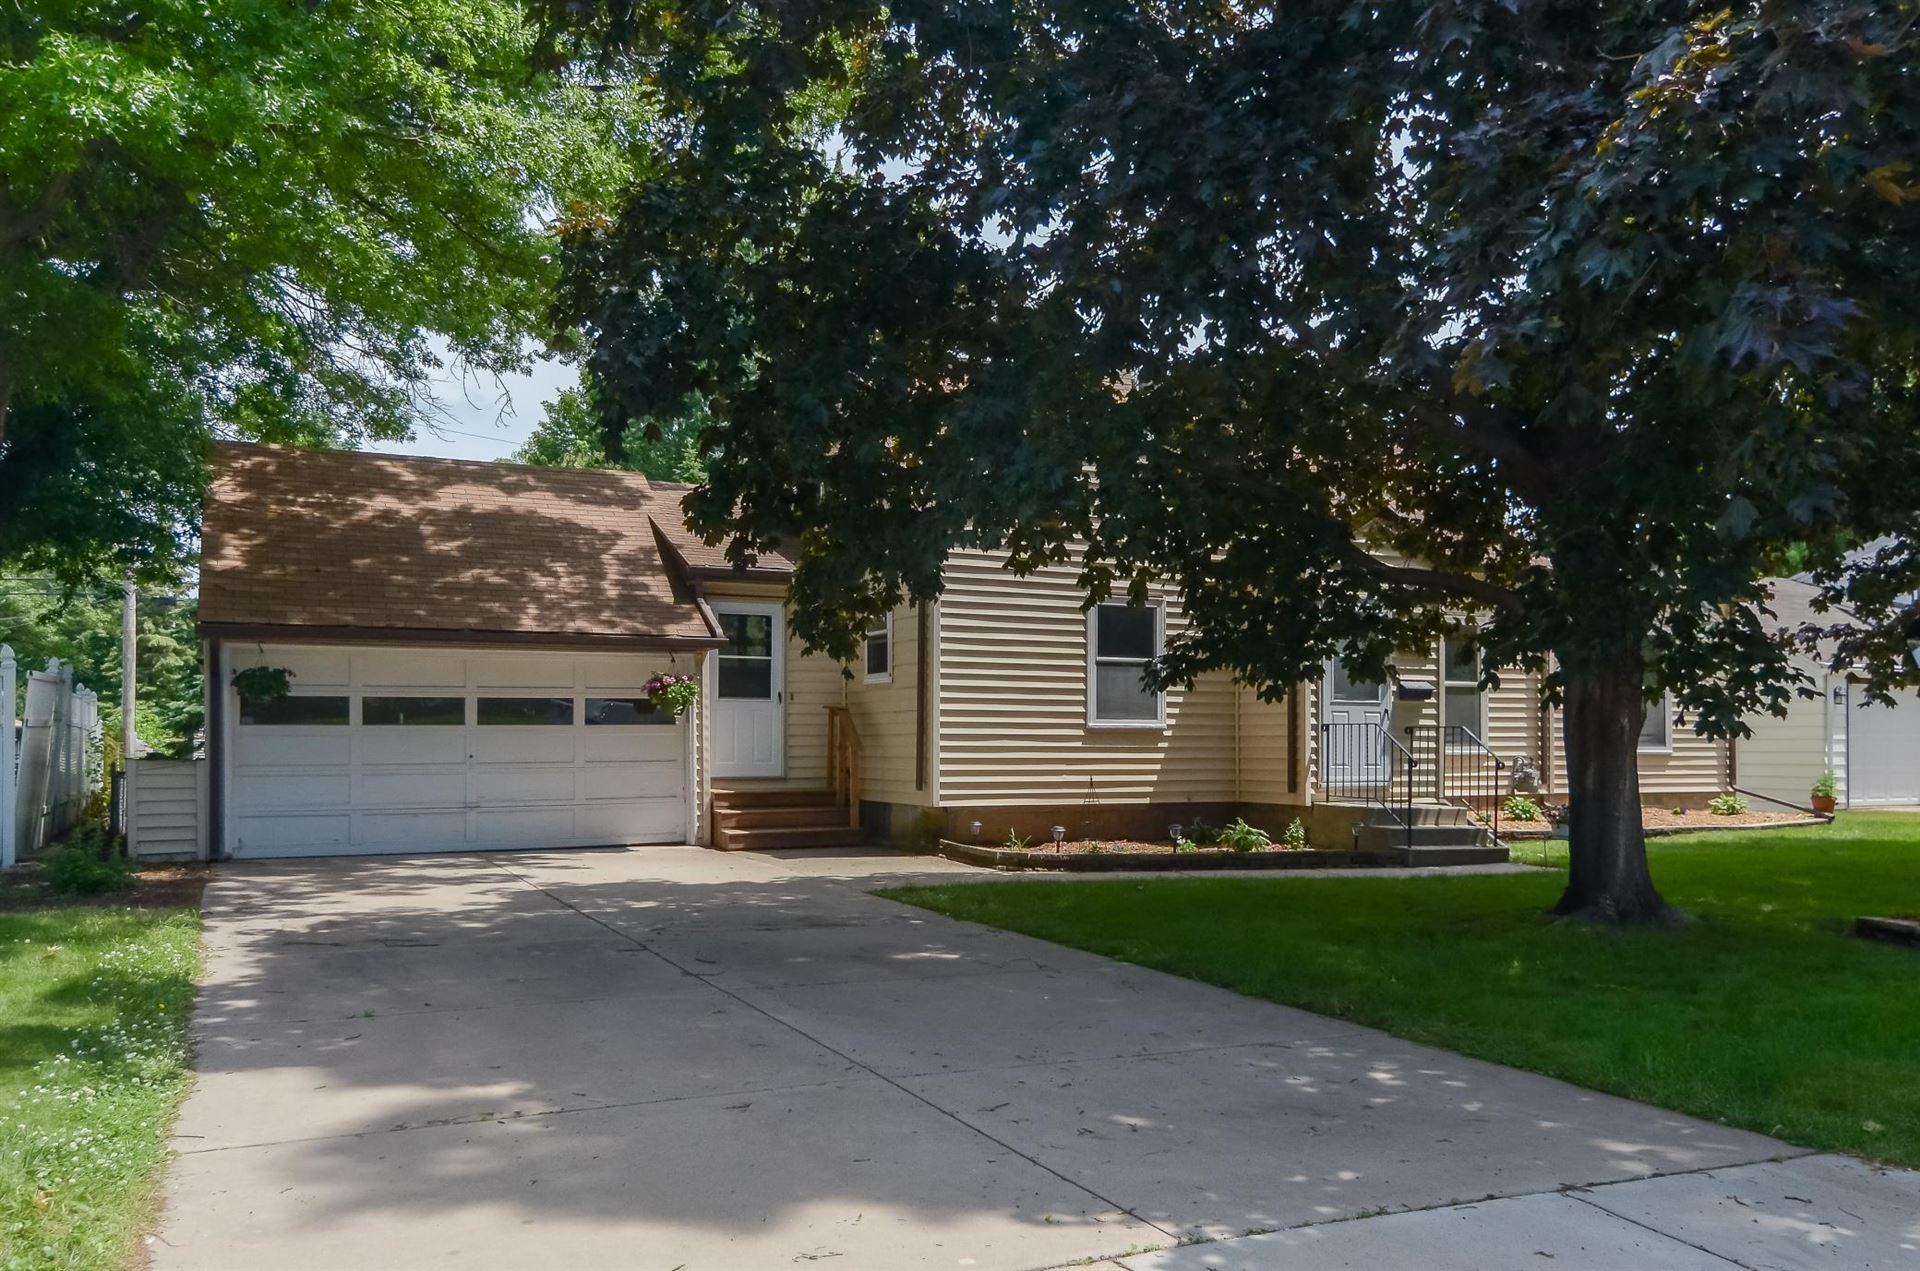 6409 13th Avenue S, Richfield, MN 55423 - MLS#: 5551918